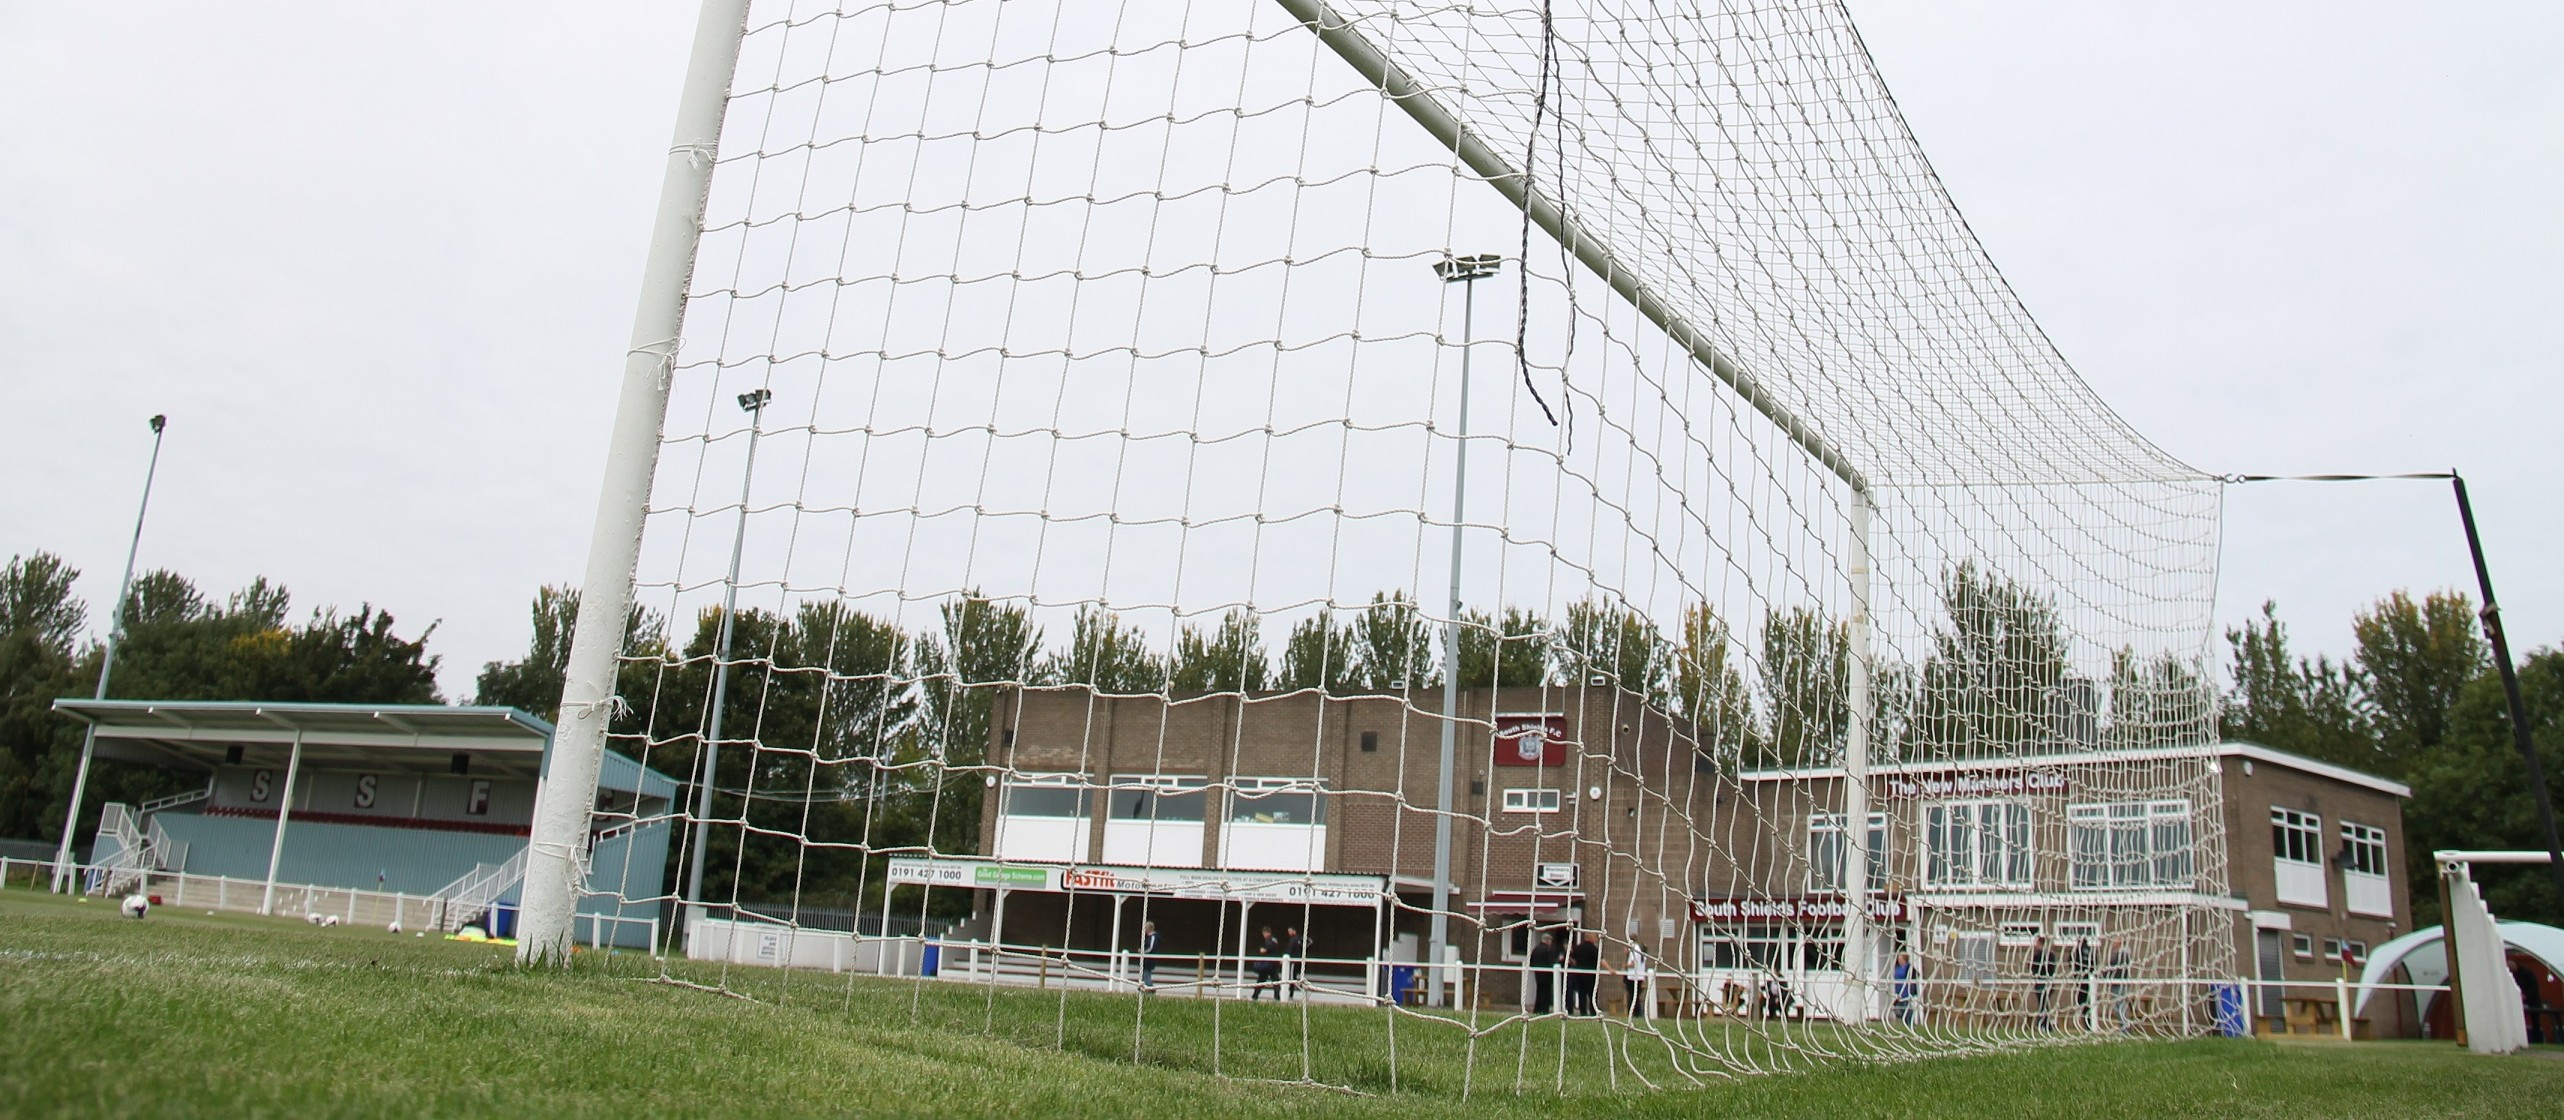 Could YOU help out on matchday at Mariners Park?